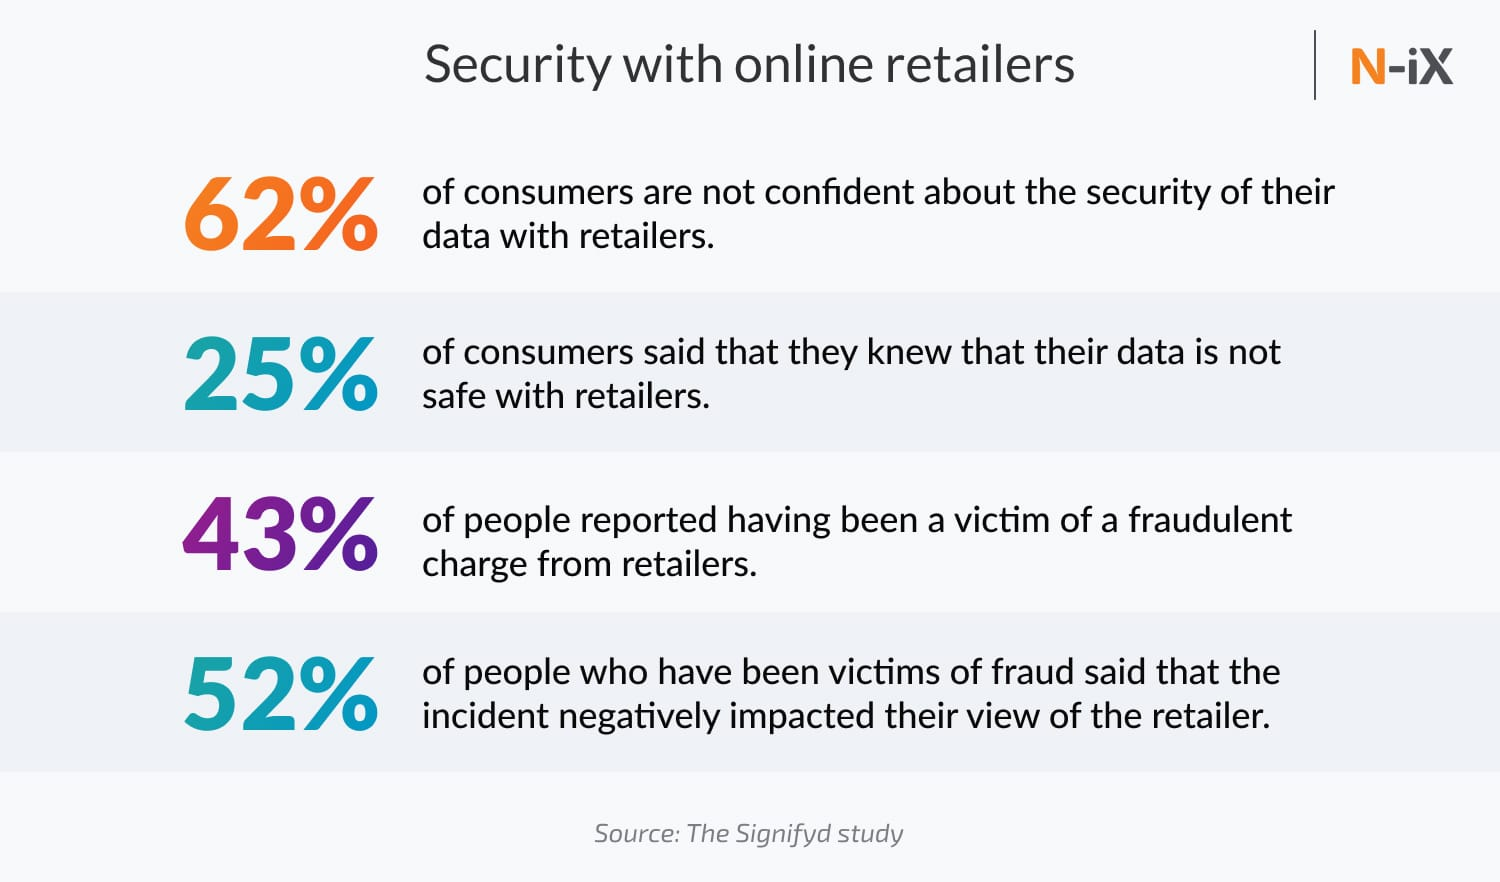 types of security vulnerabilities in e-commerce